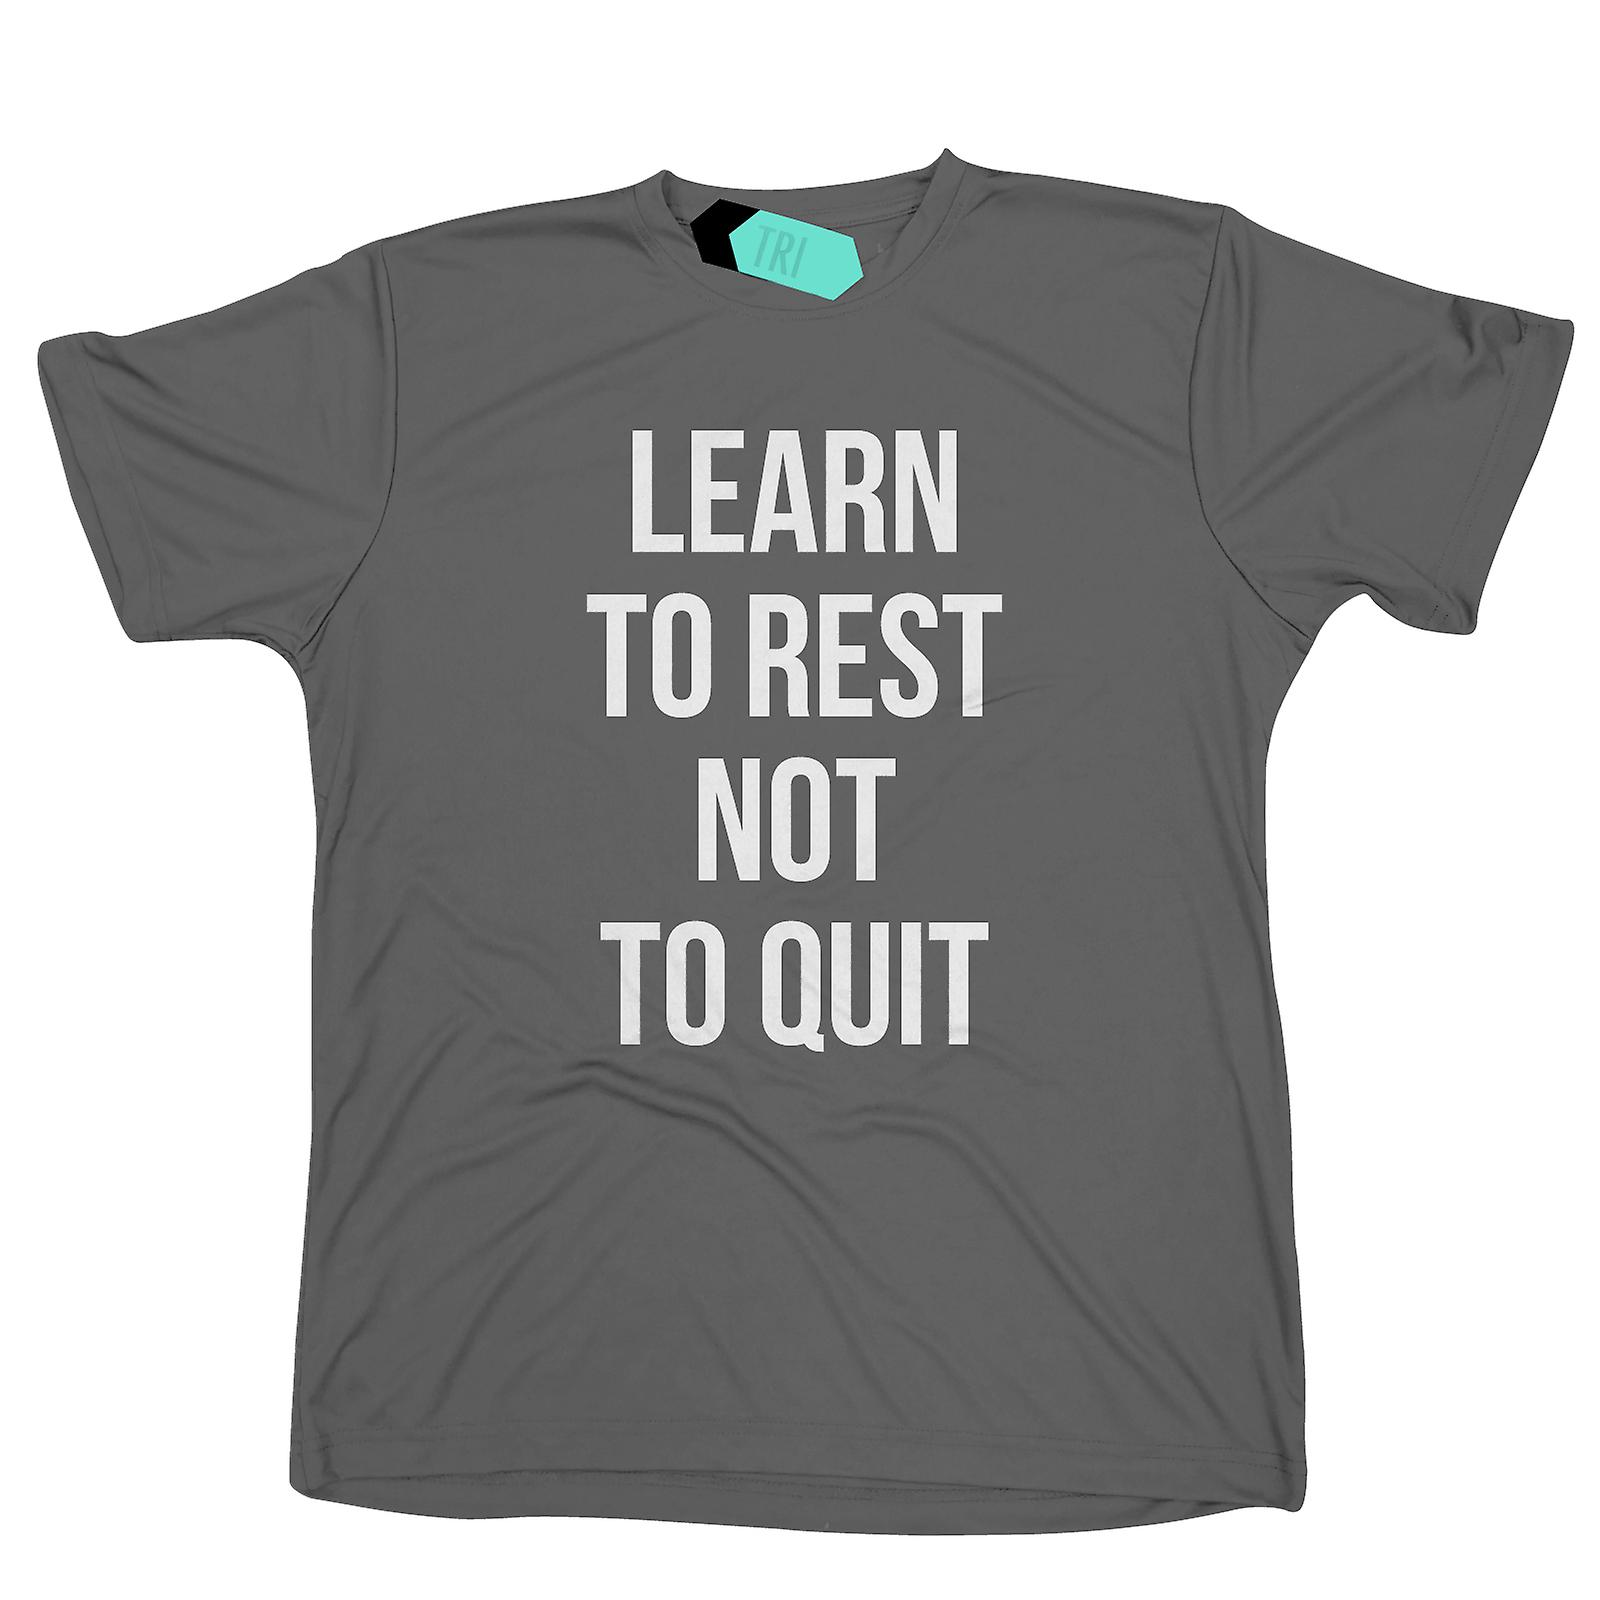 Learn To Rest, Not To Quit Mens Tridri Activewear Top